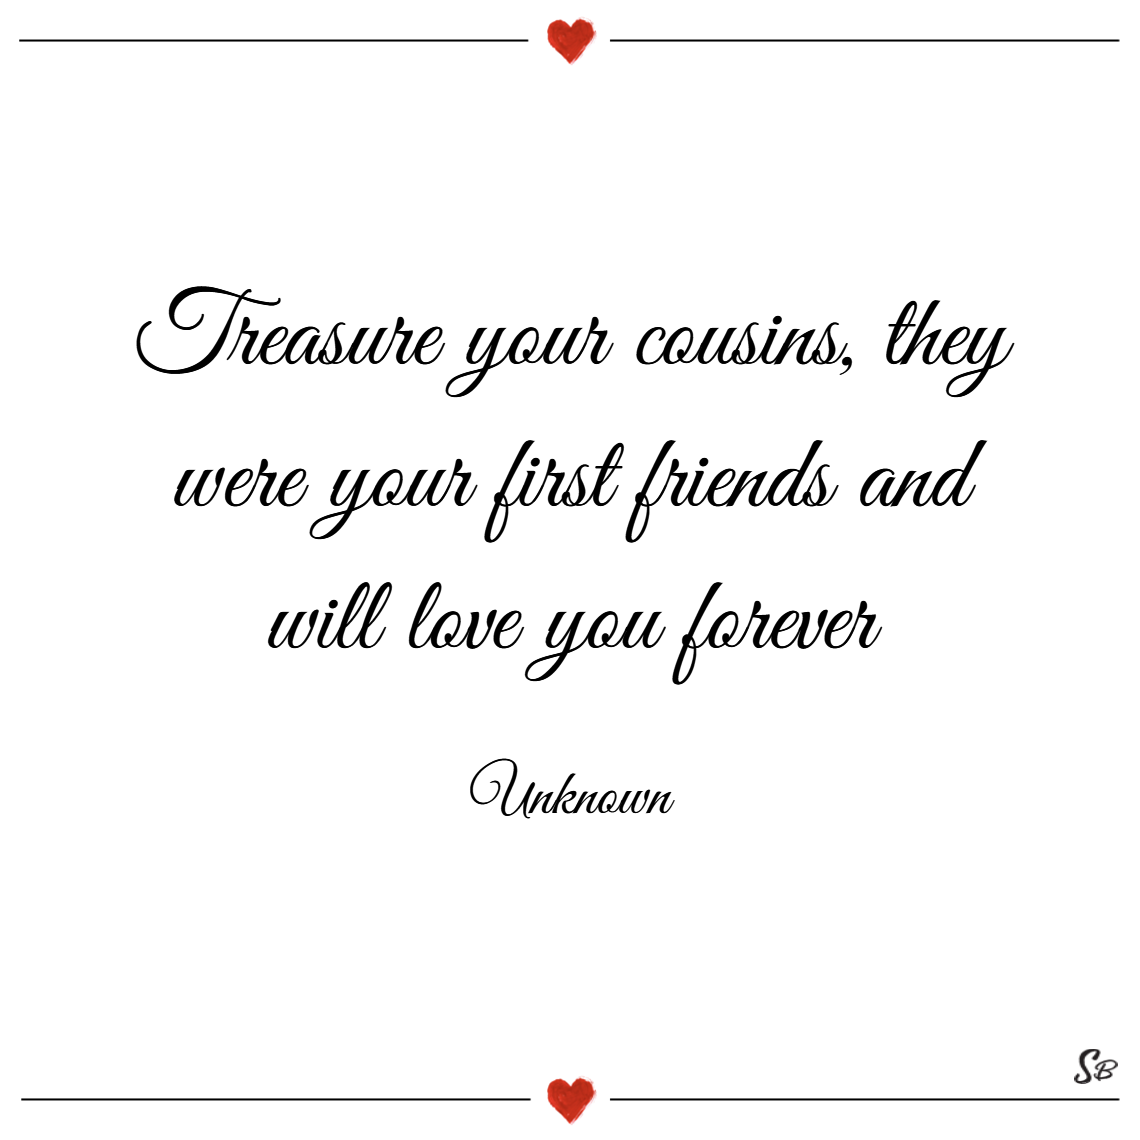 Treasure your cousins, they were your first friends and will love you forever. – unknown